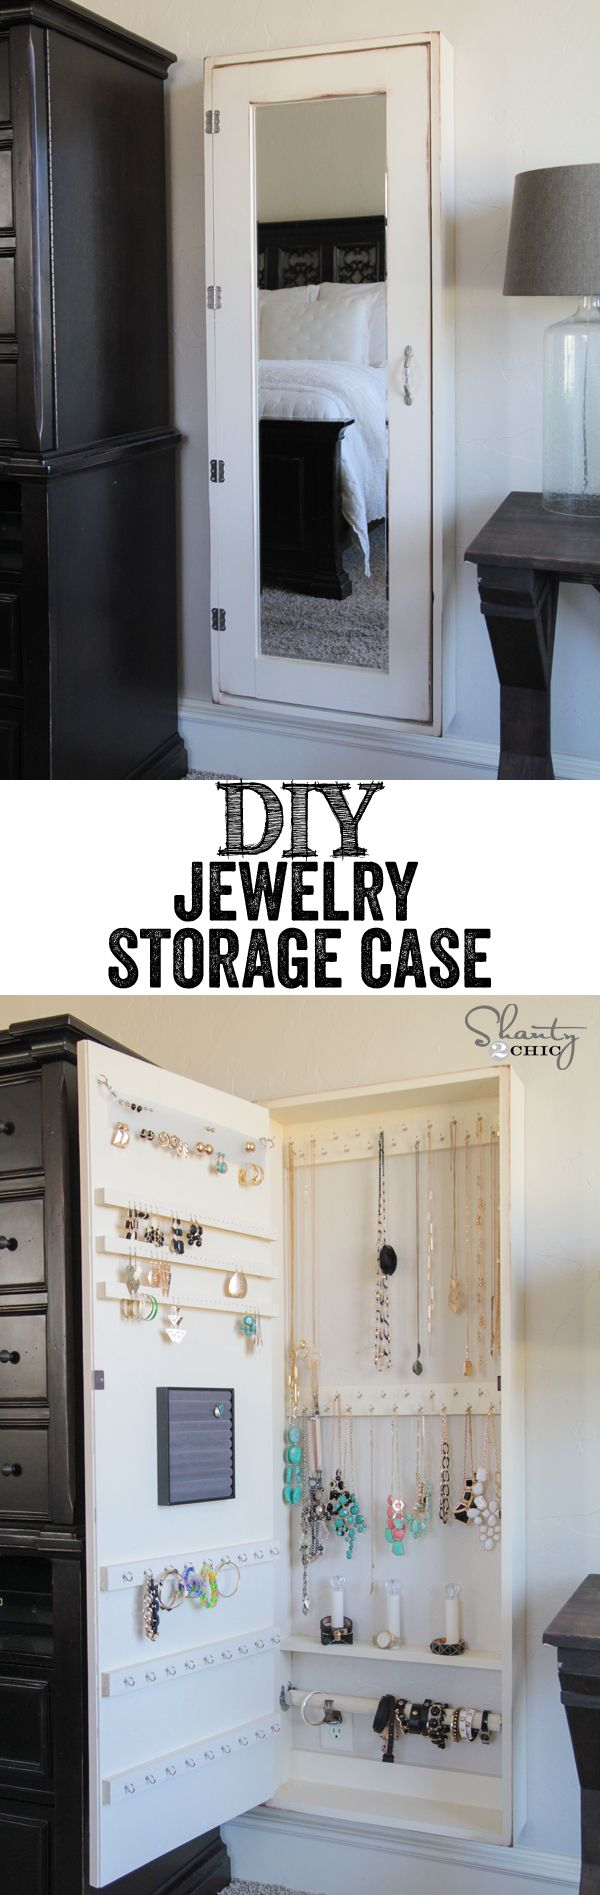 DIY Project Plan: How to Build a Jewelry Organizer // Storage Case via @Shanti Paul Leeuwen Yell-2-Chic.com